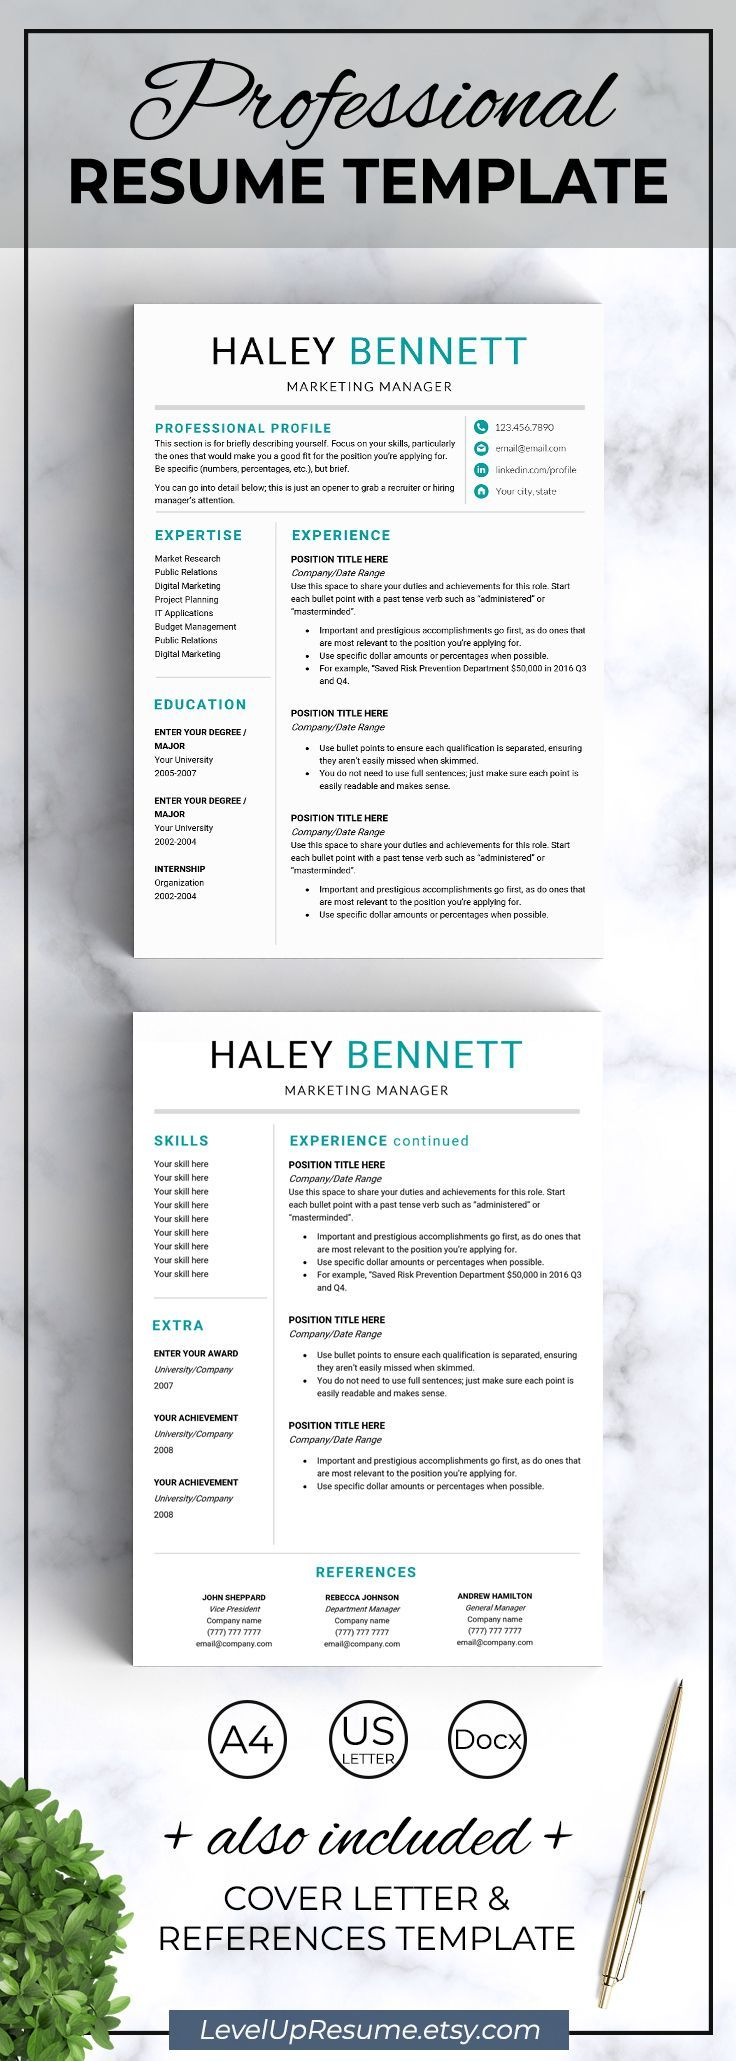 Bullet Point Resume Beauteous 147 Best Build Your Resume Images On Pinterest  Resume Tips Resume .